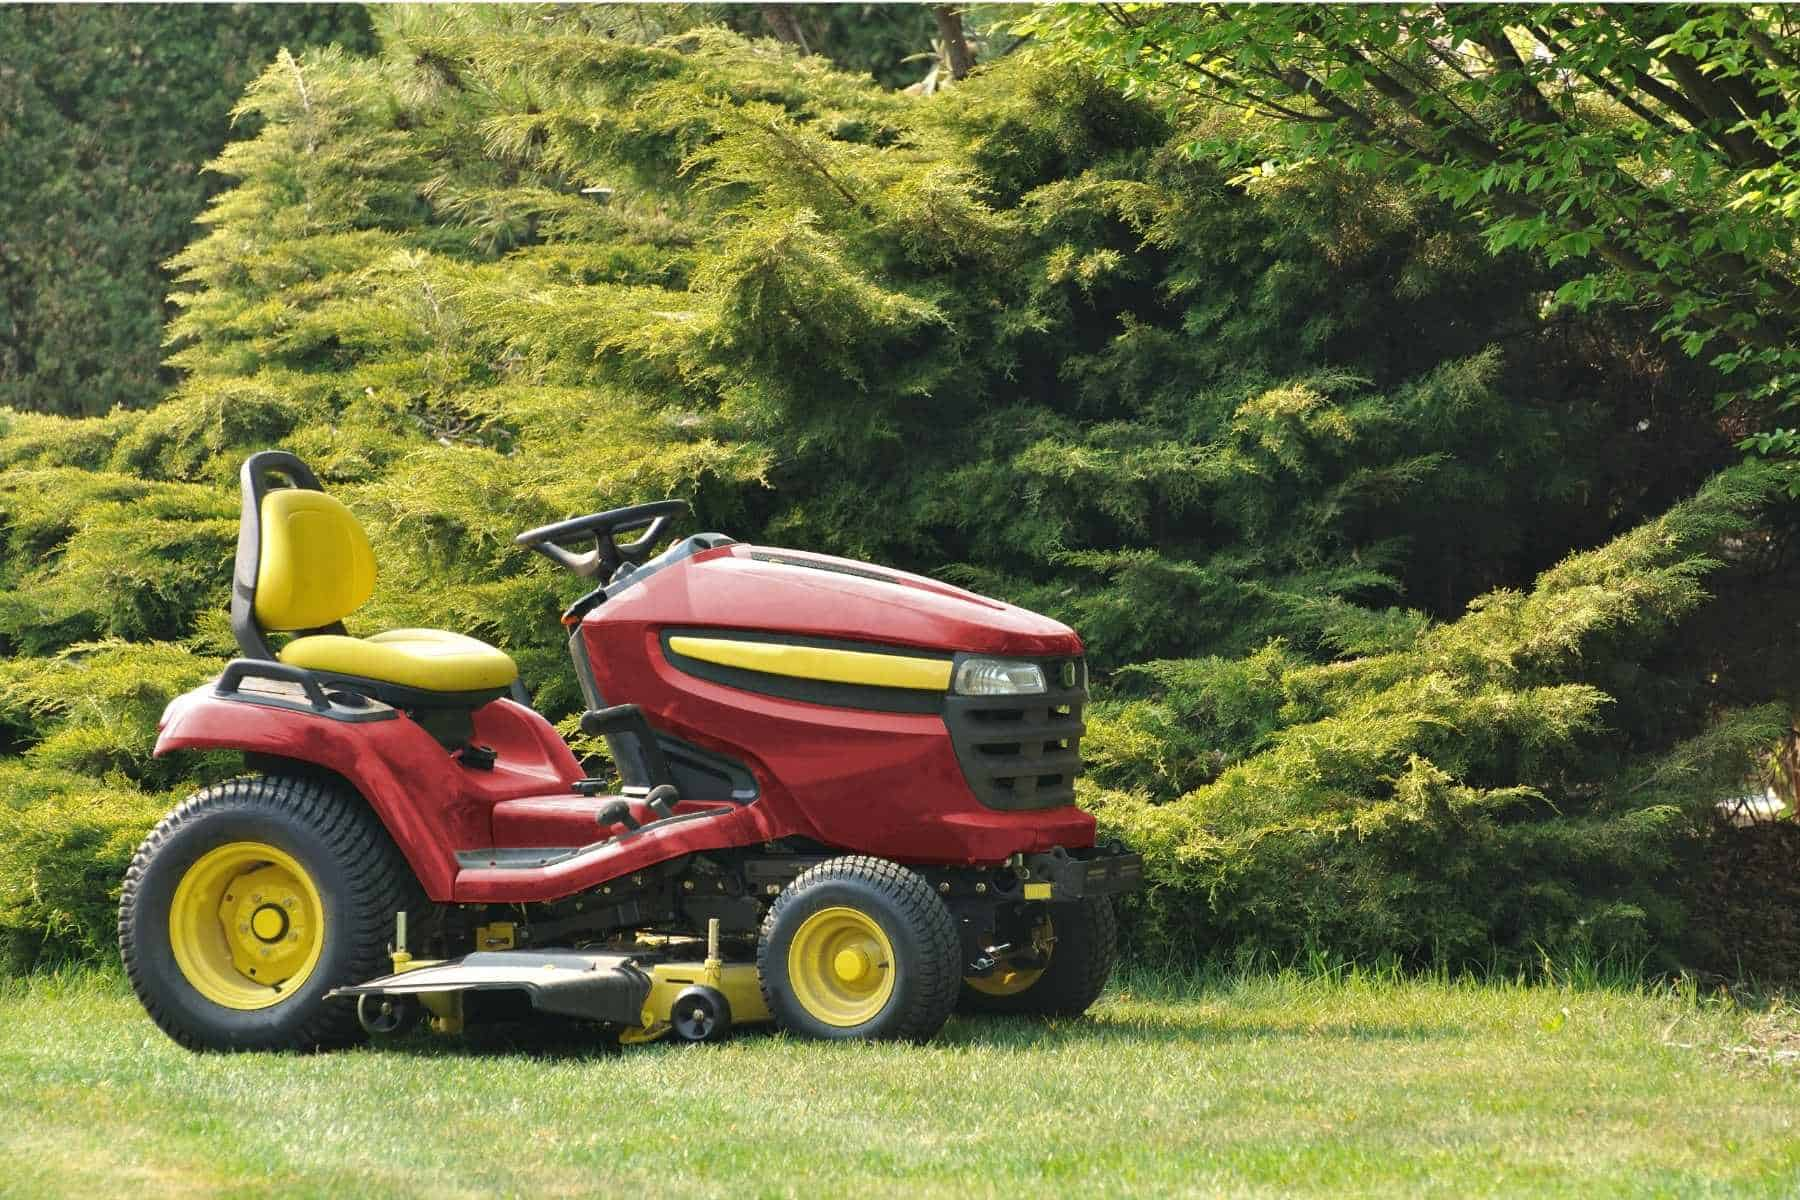 Can You Tip A Riding Lawn Mower On Its Side